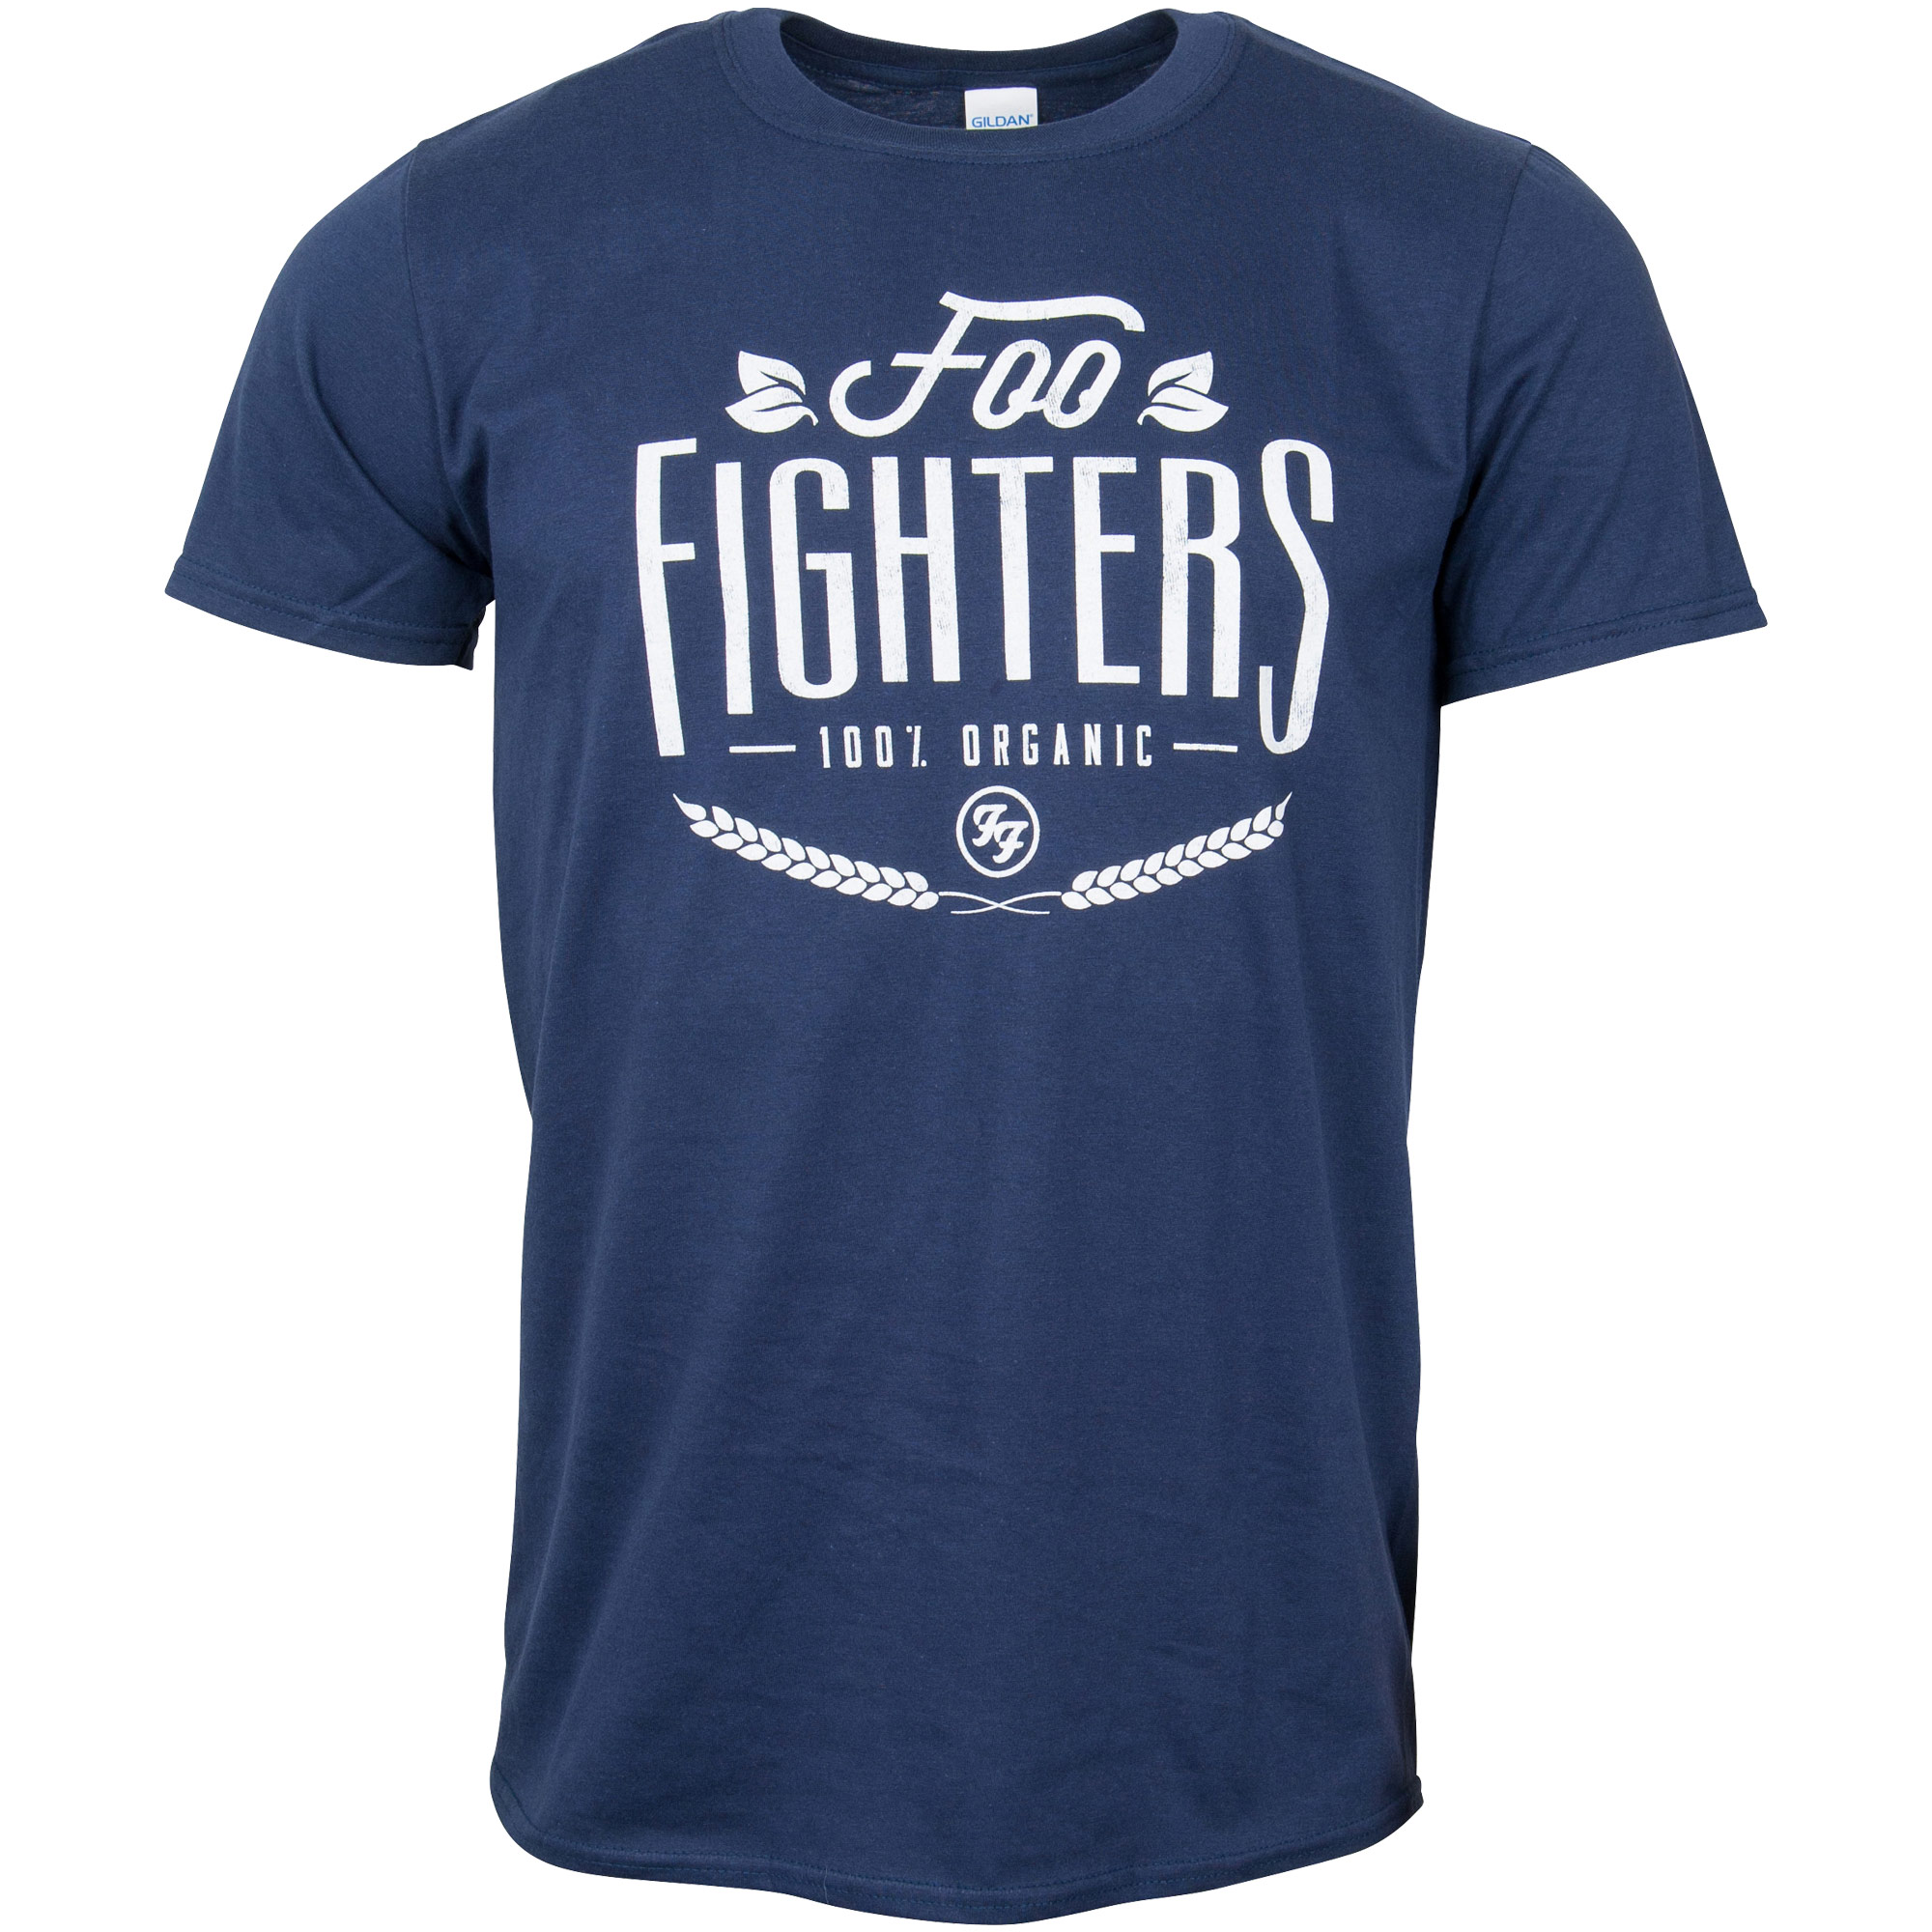 Foo Fighters - T-Shirt 100% Organic - blau